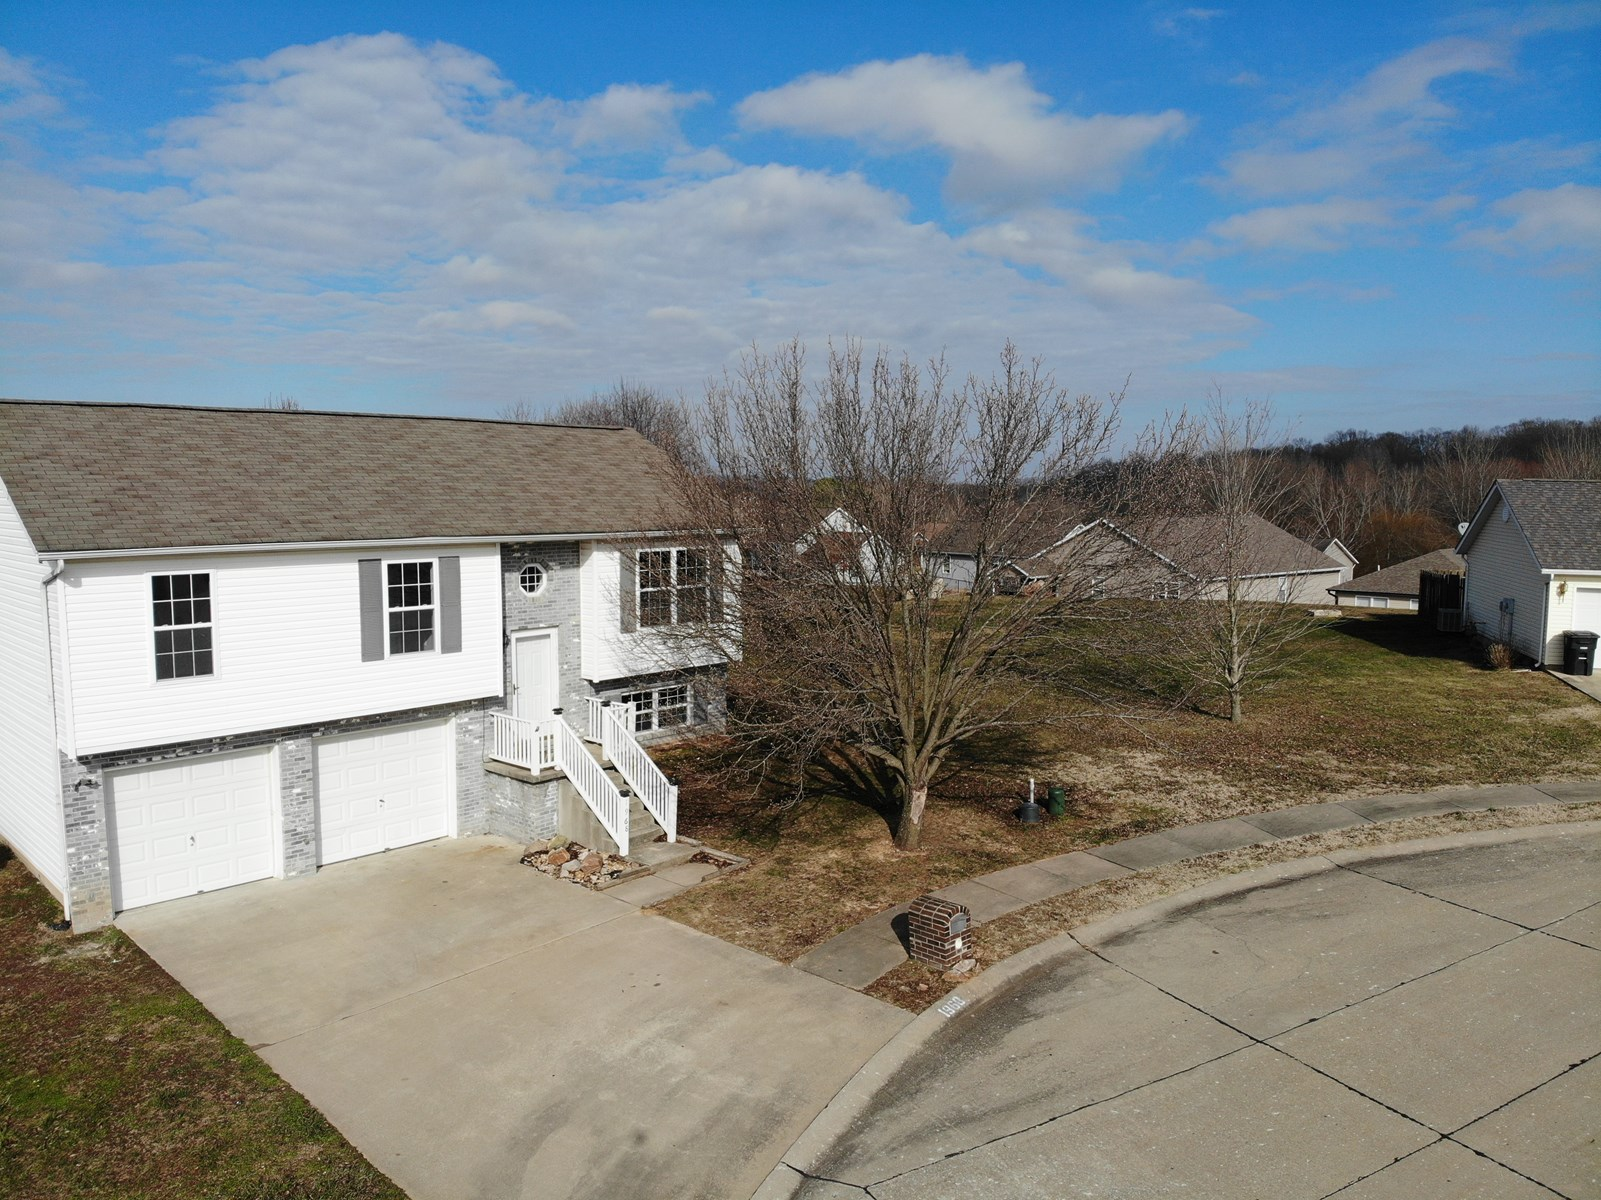 3 Bedroom House for Sale in Cape Girardeau, Missouri